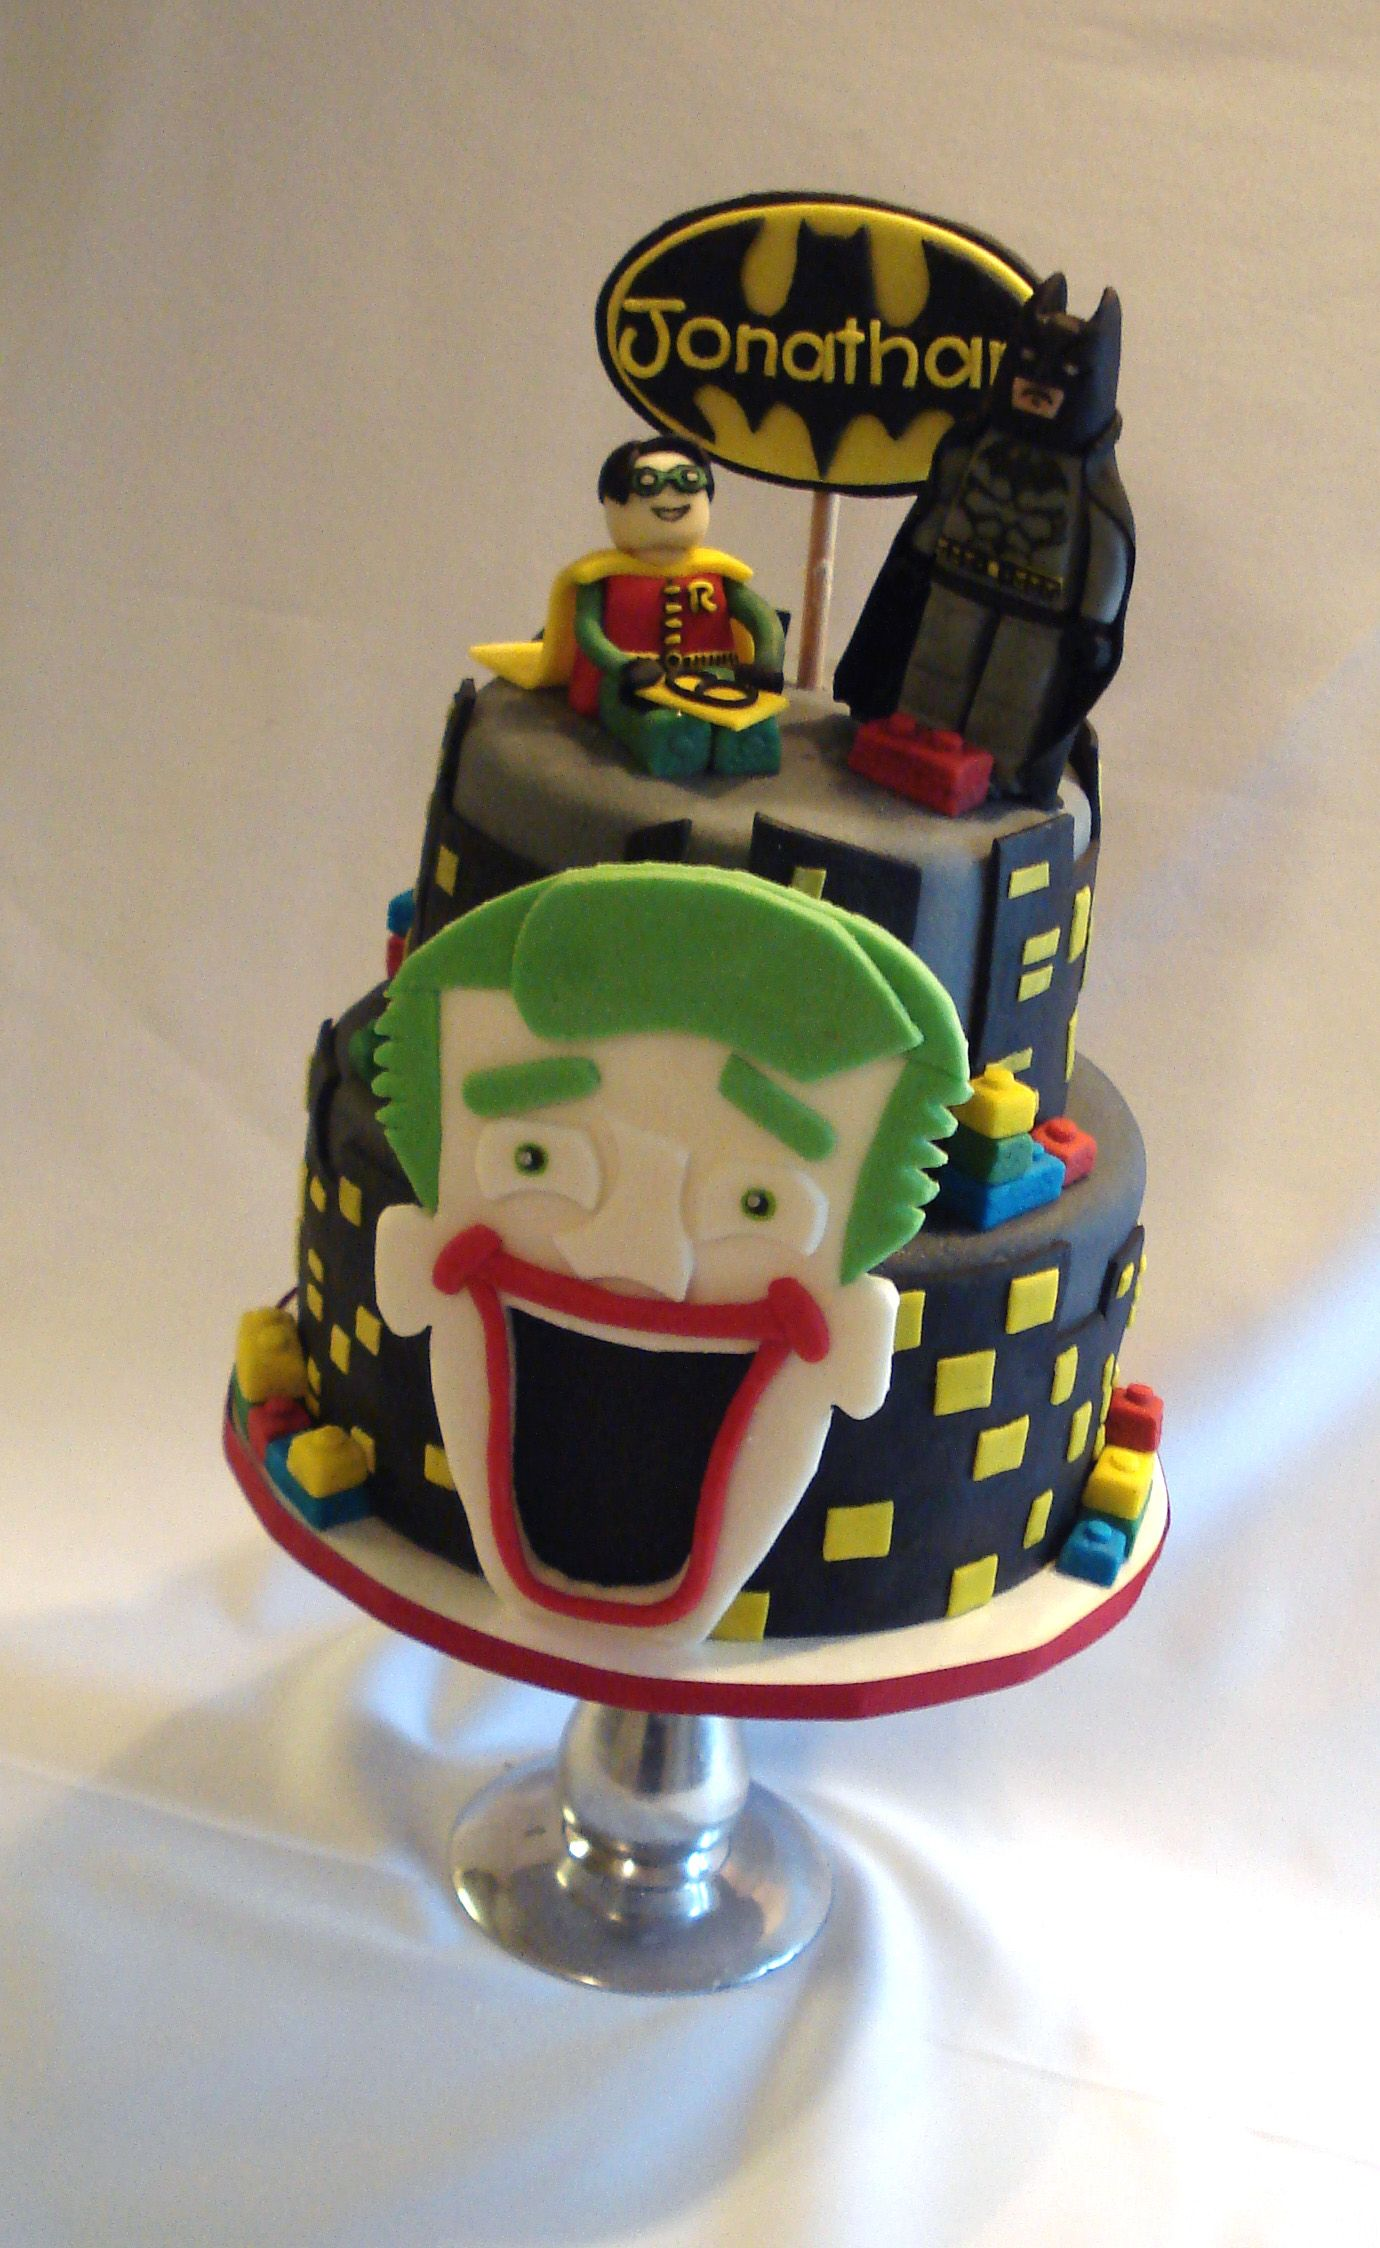 Lego Inspired Lego Batman Inspired Cake All Fondant Cake With Fondant